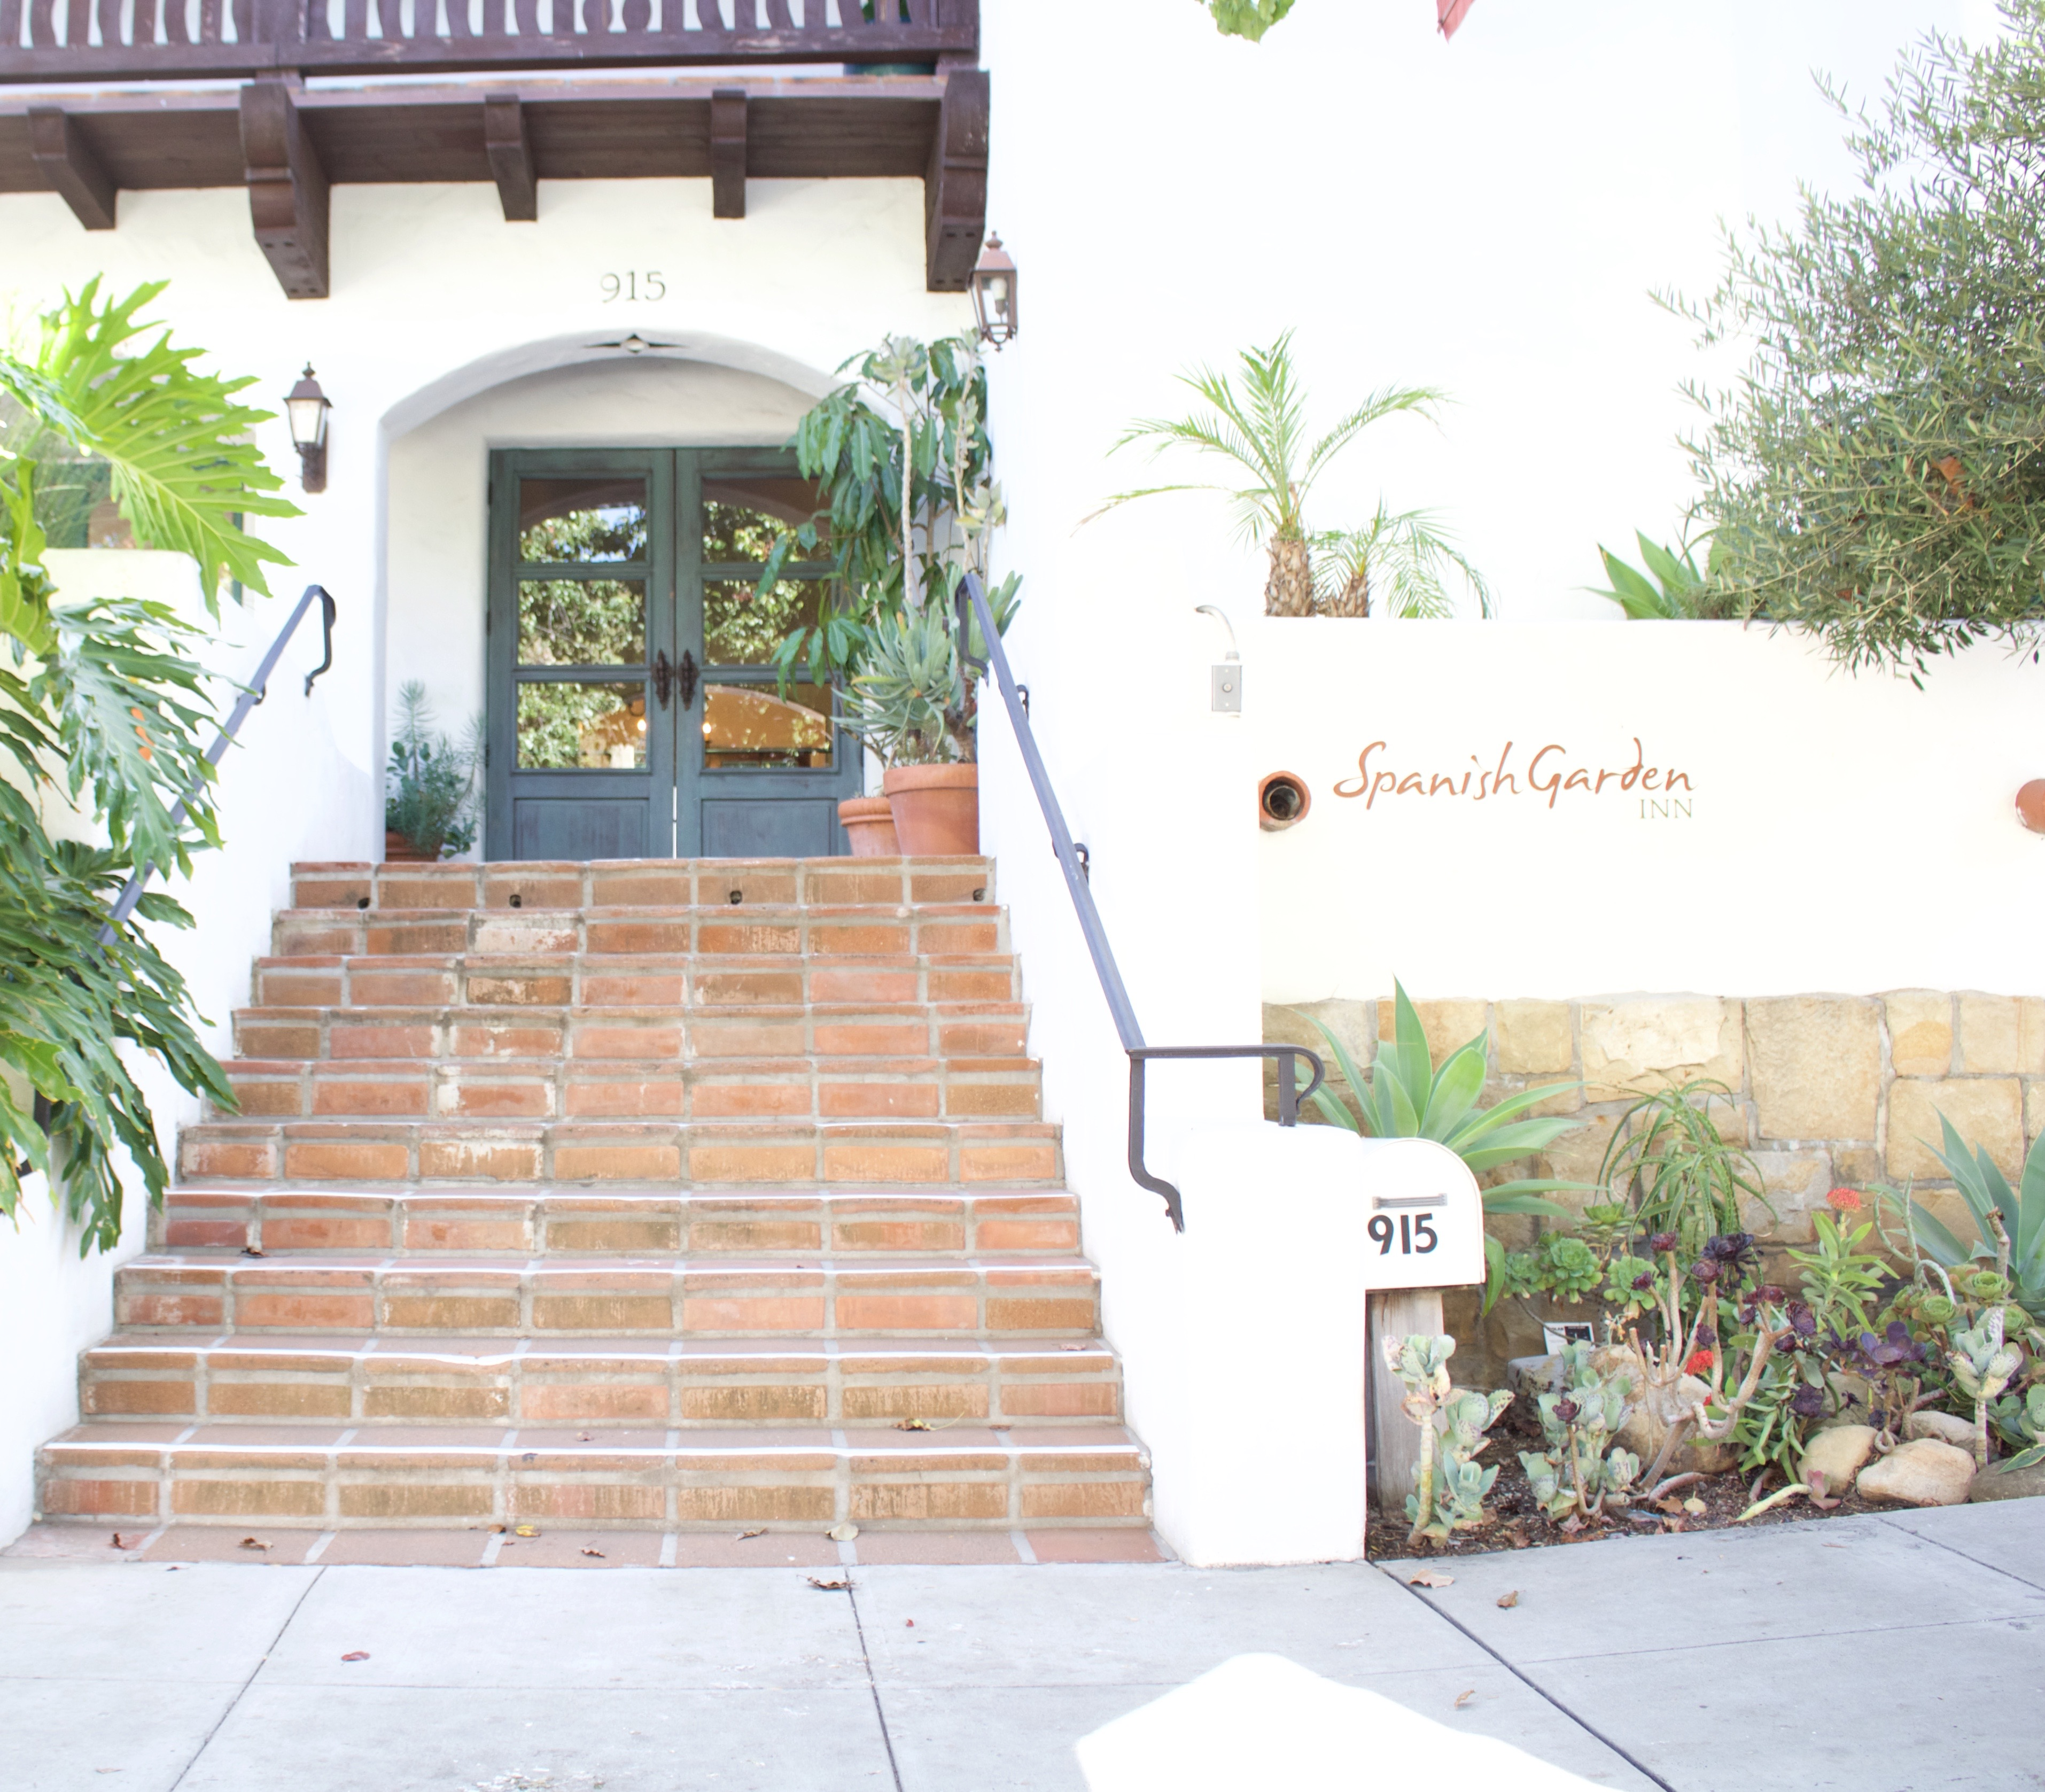 Spanish Garden Inn, Santa Barbara, California - My Styled Life